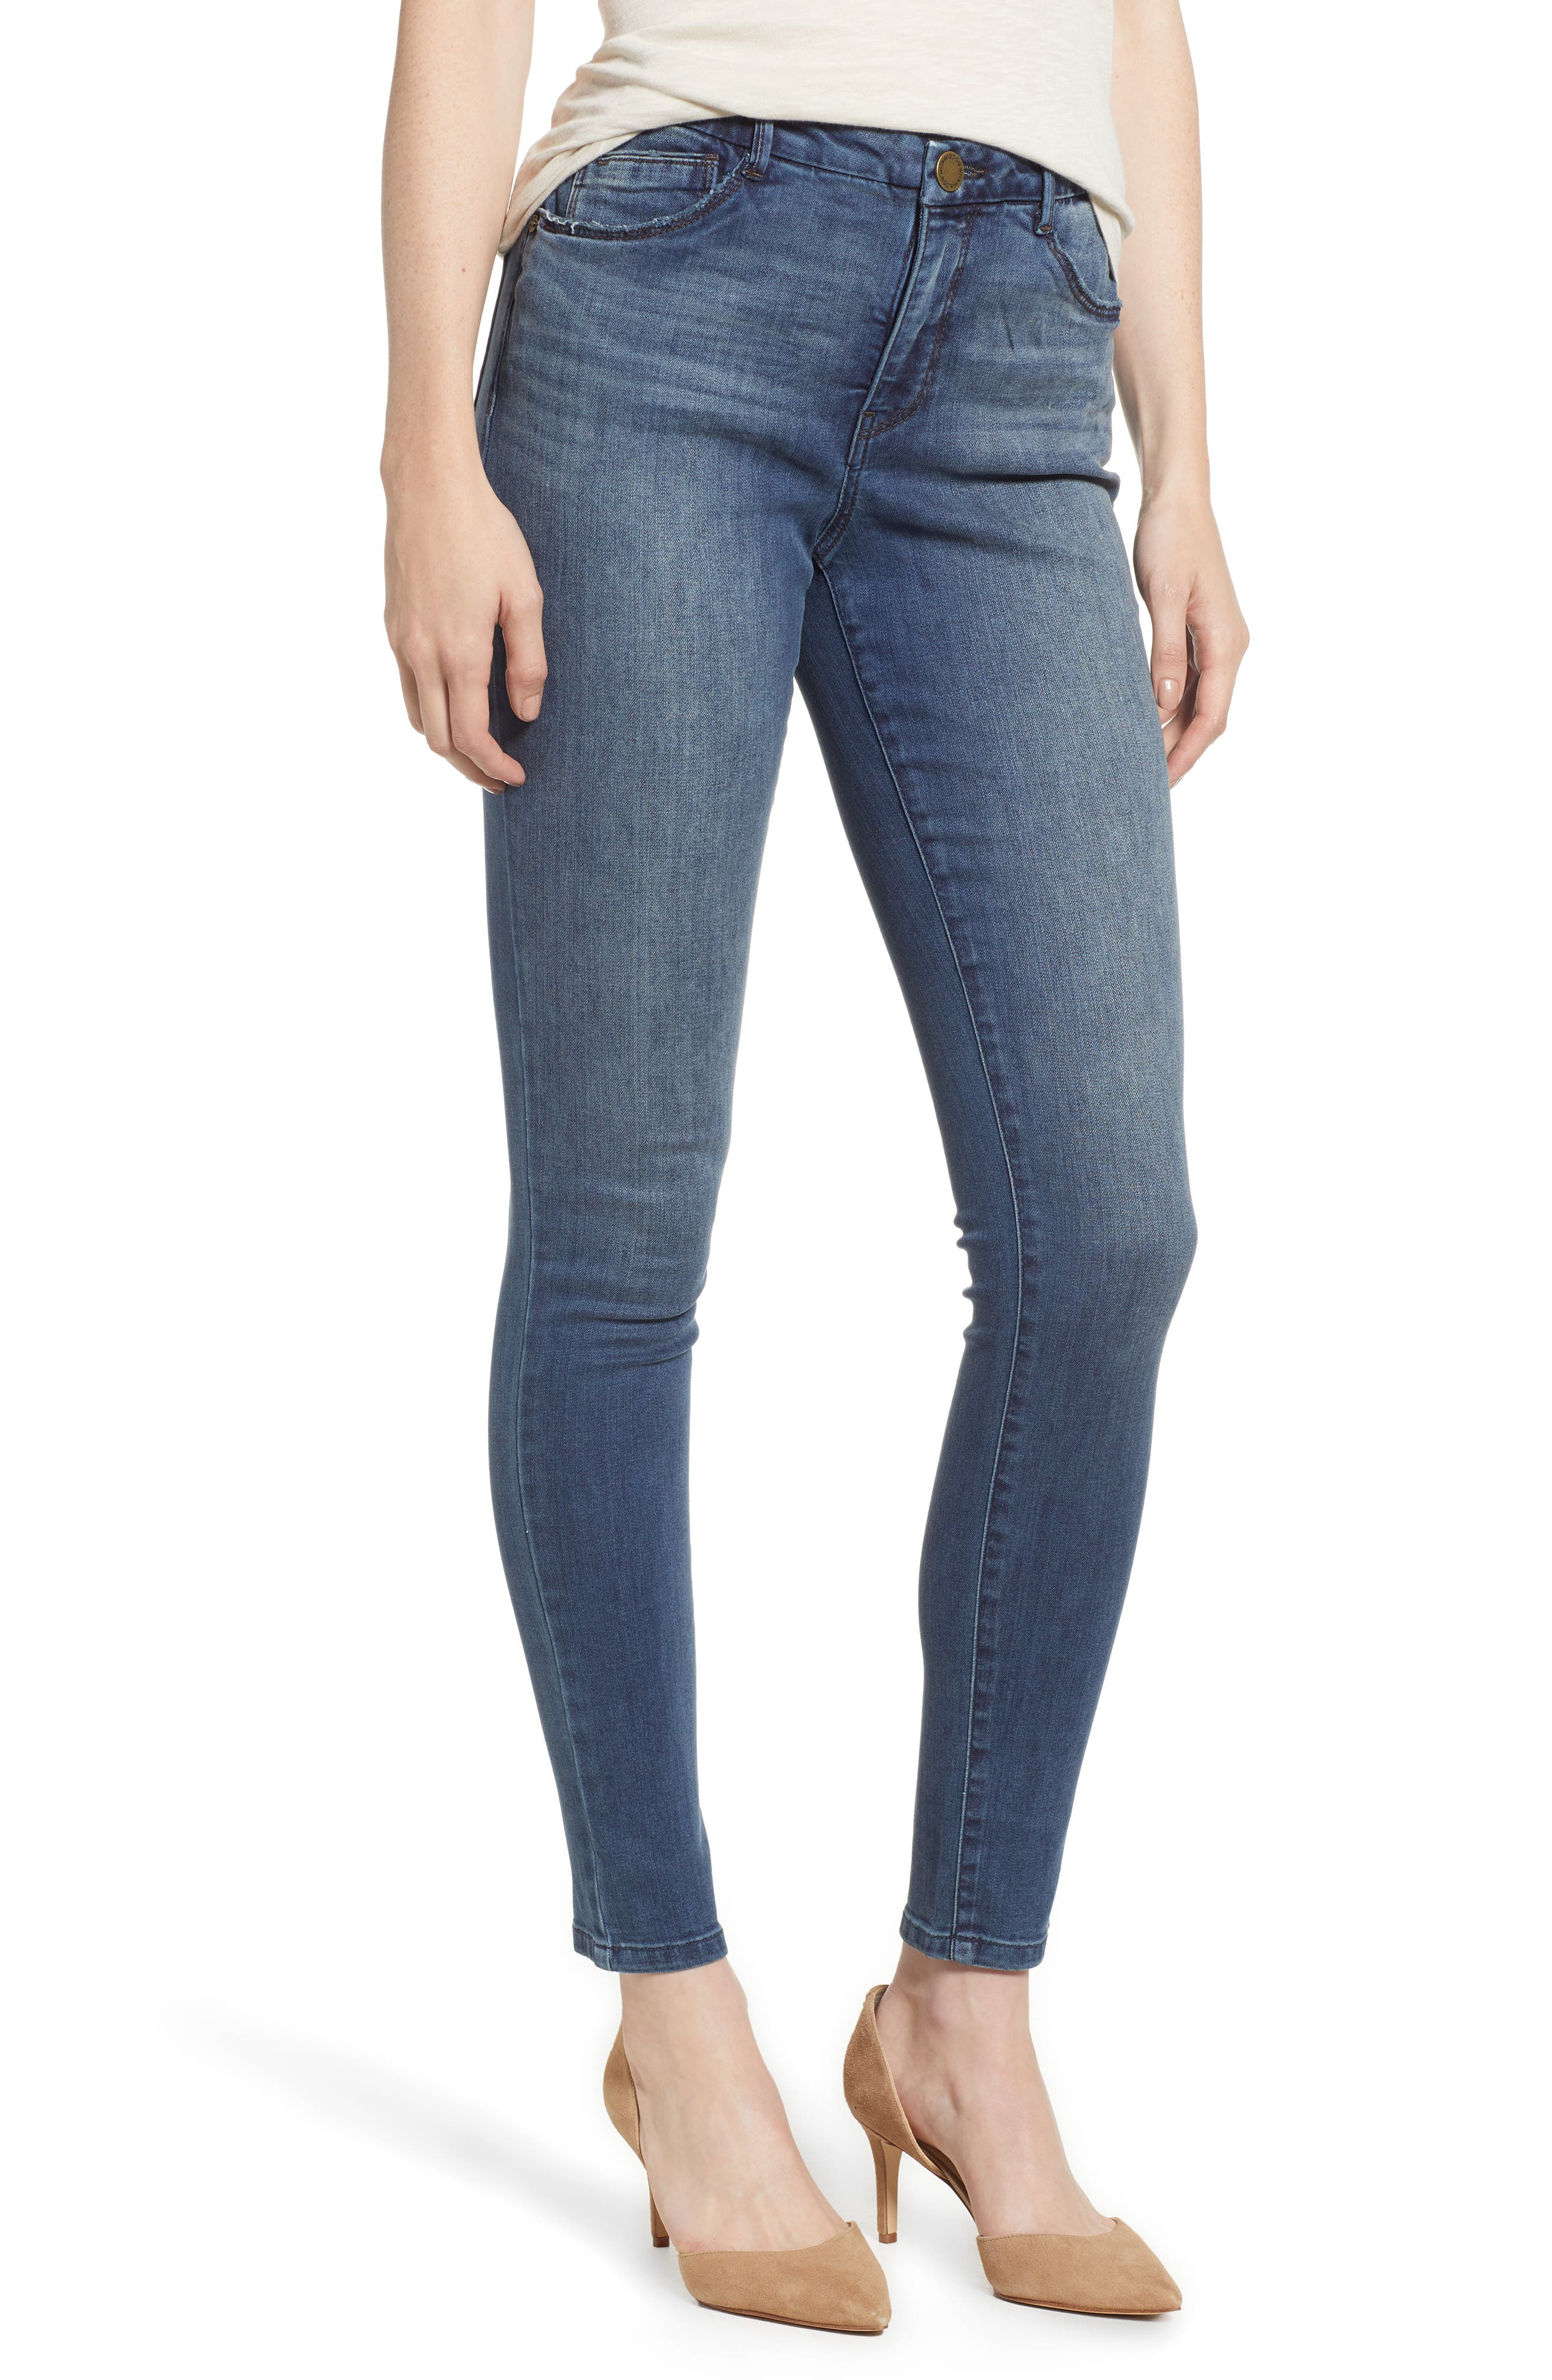 Ab-Solution High Waist Skinny Jeans,                         Main,                         color, 420